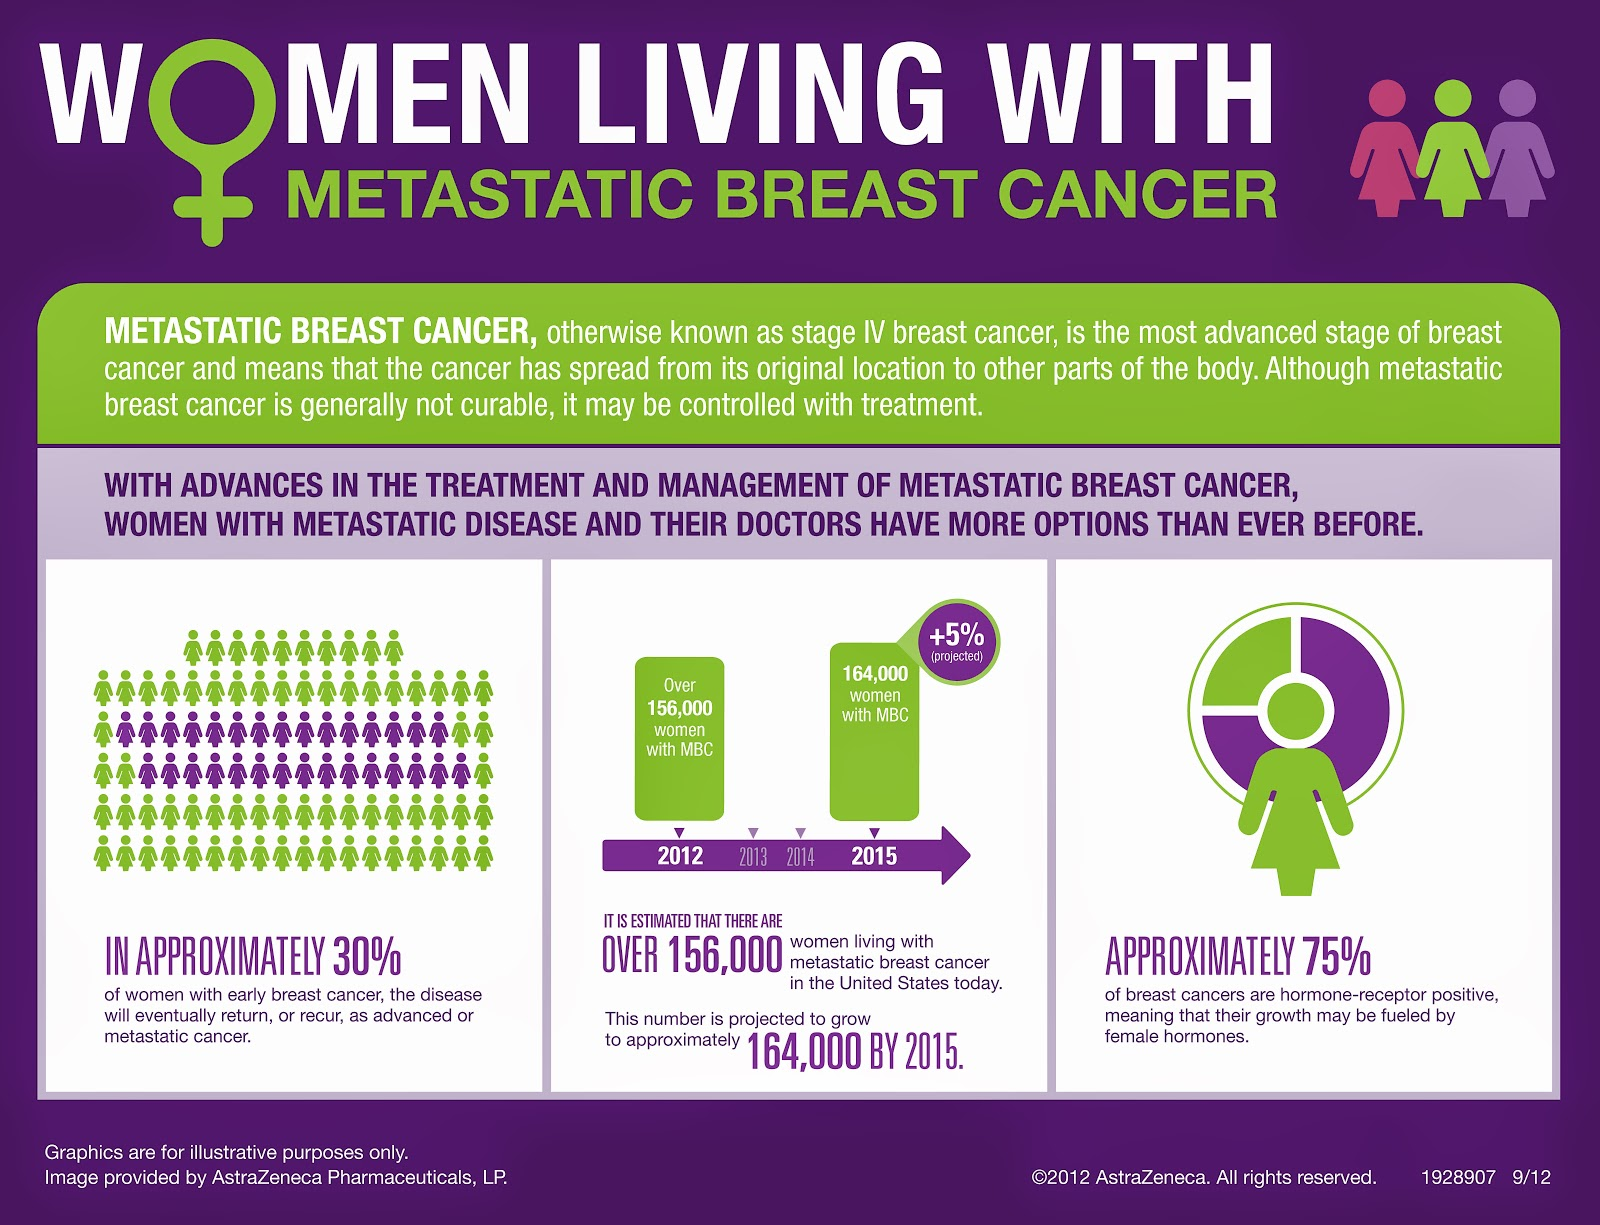 October 13th is Metastatic Breast Cancer Awareness Day | My Fabulous Boobies